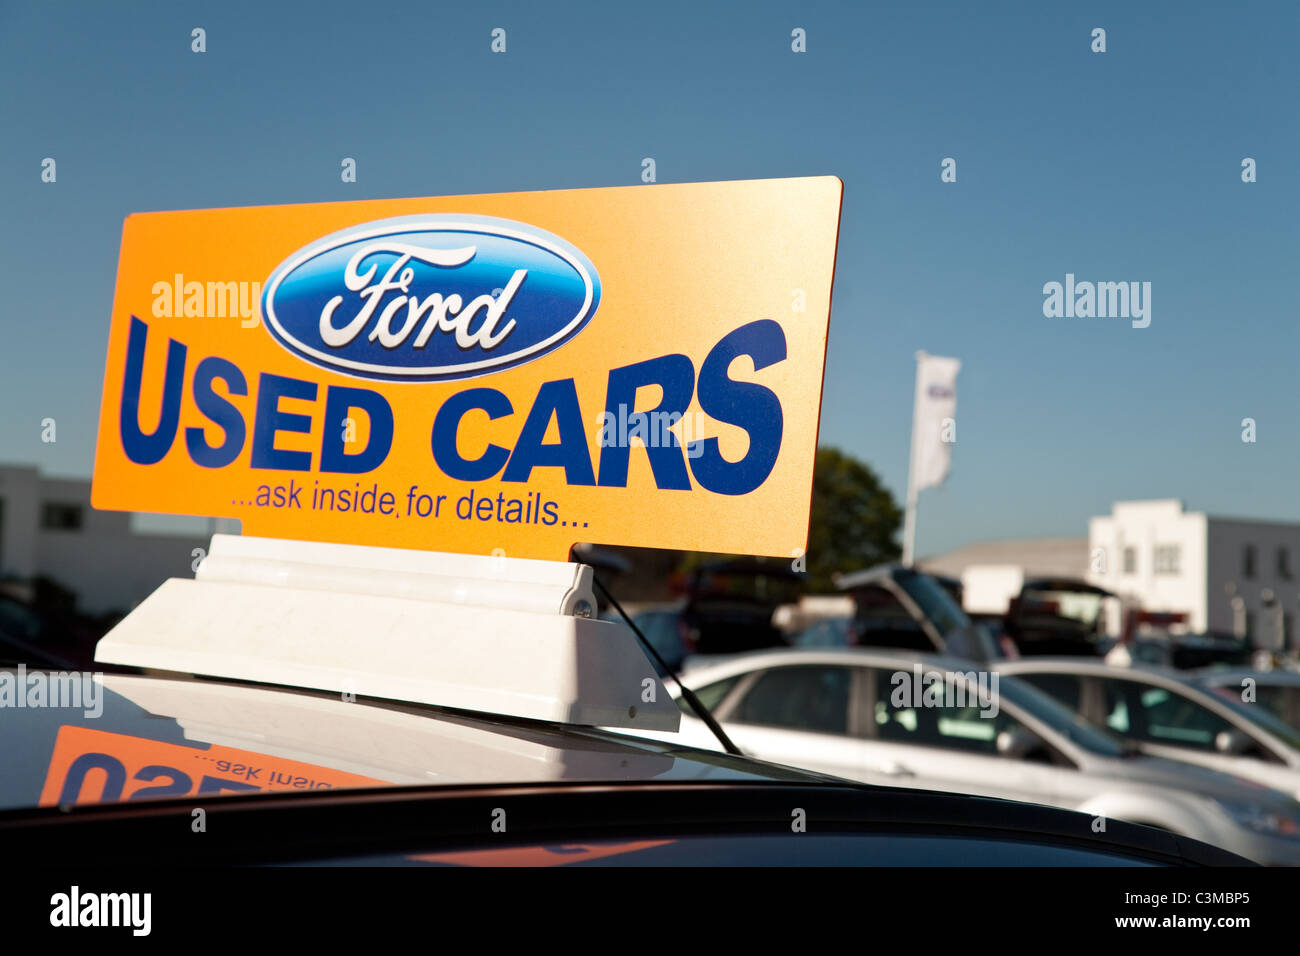 Ford Used Car Sign At A Second Hand Car Dealership, Cambridge, UK